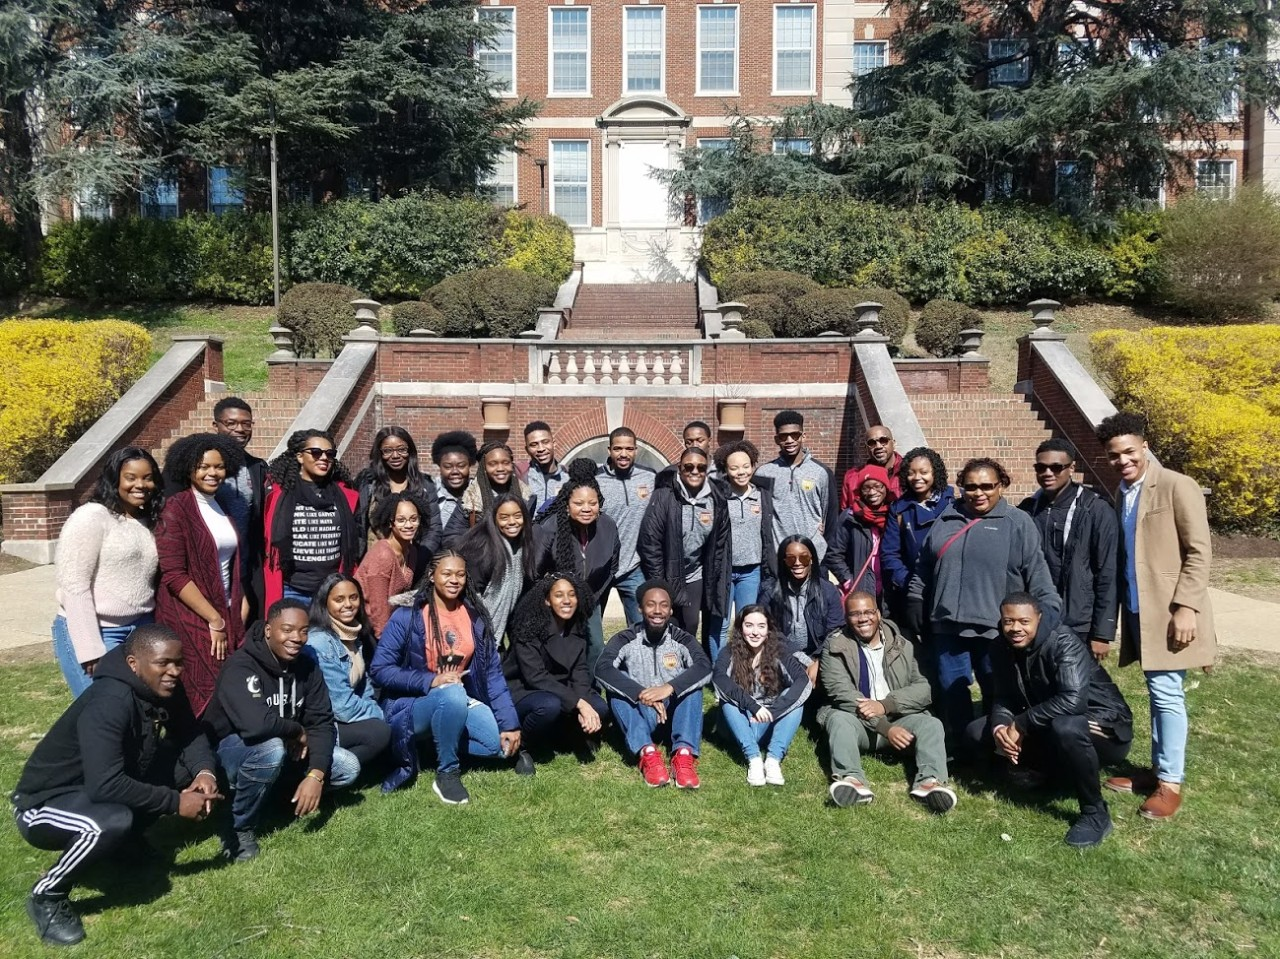 Group Photo of students and staff on  the 2018 Spring Break Tour